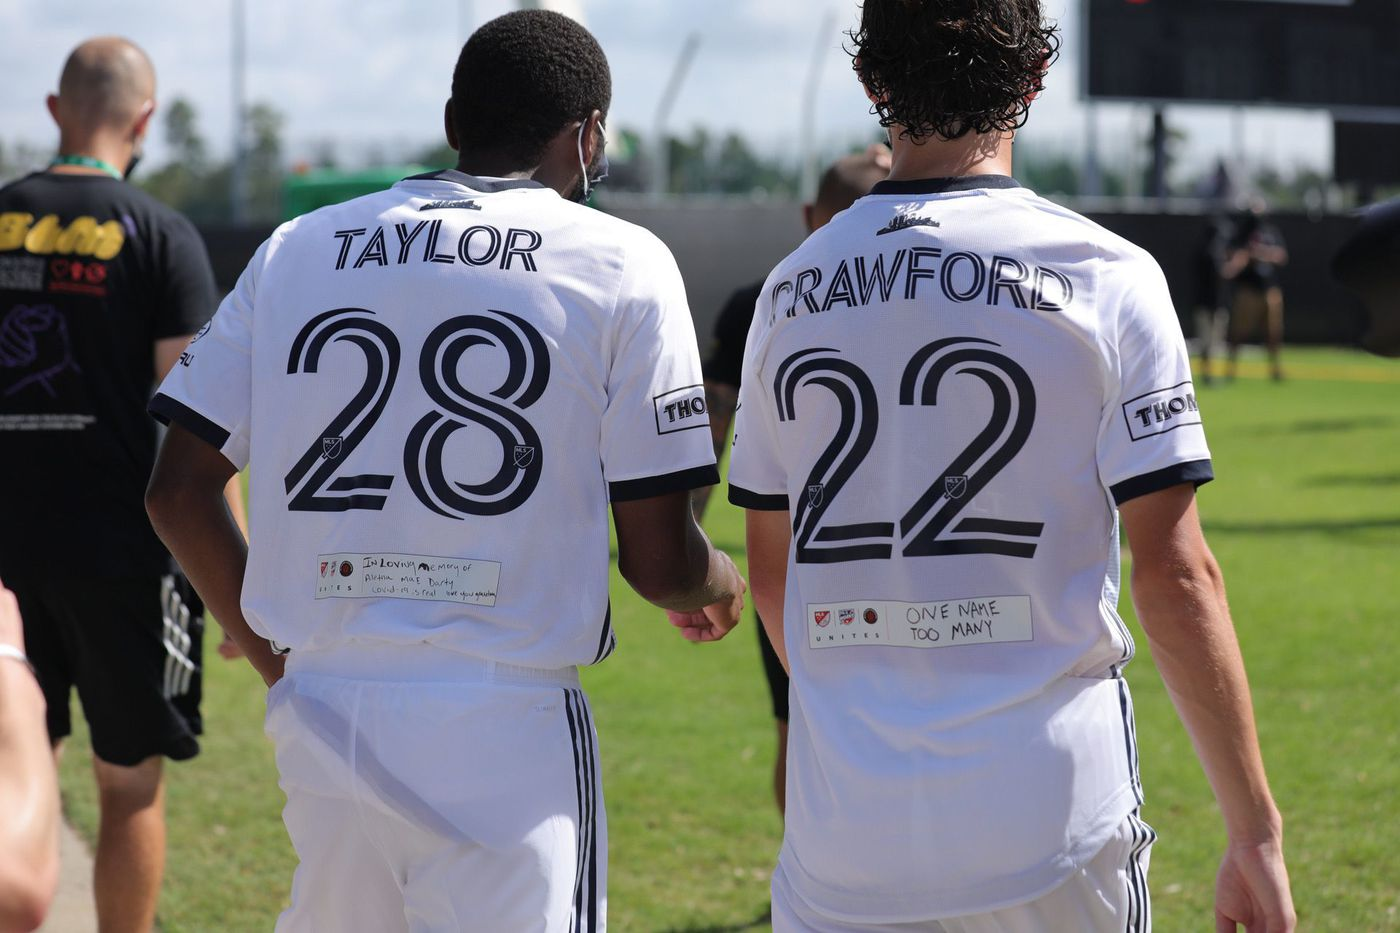 Union defender Ray Gaddis wore the name of the slain Breonna Taylor on his jersey; and midfielder Brenden Aaronson wore the name of Tyree Crawford.